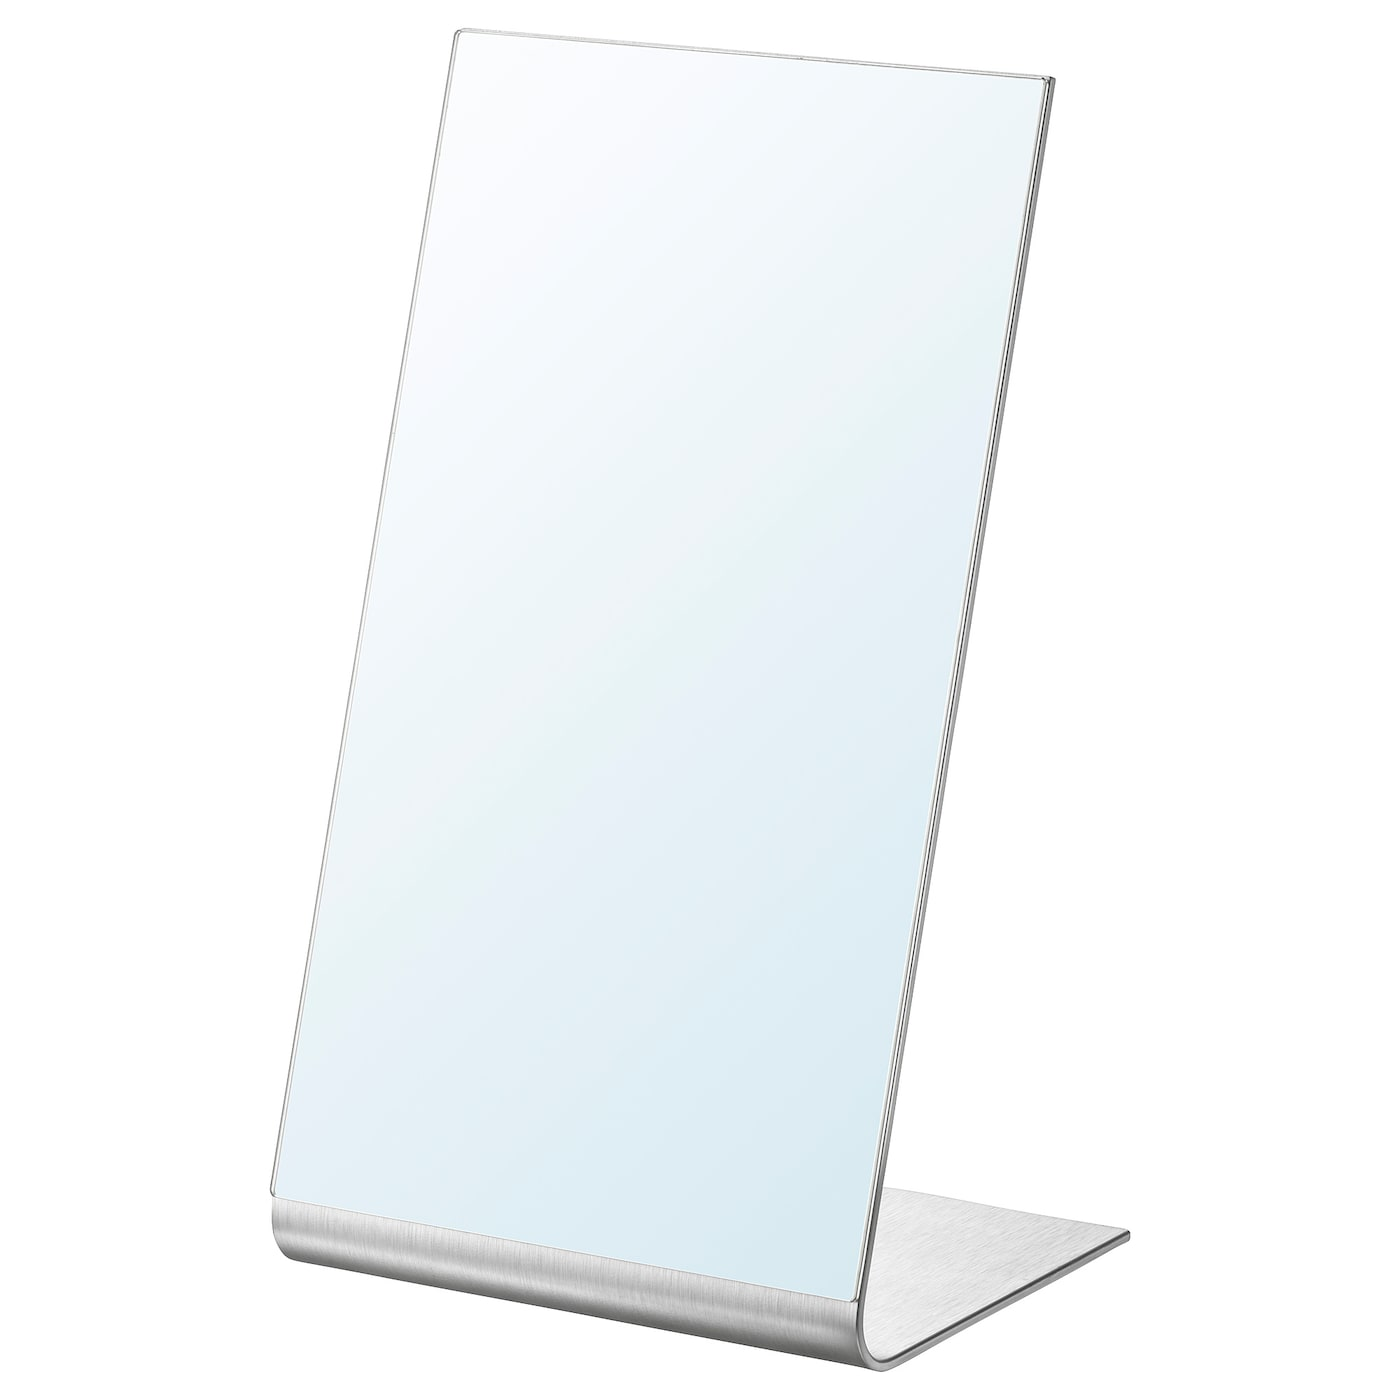 IKEA TYSNES table mirror Suitable for use in most rooms, and tested and approved for bathroom use.